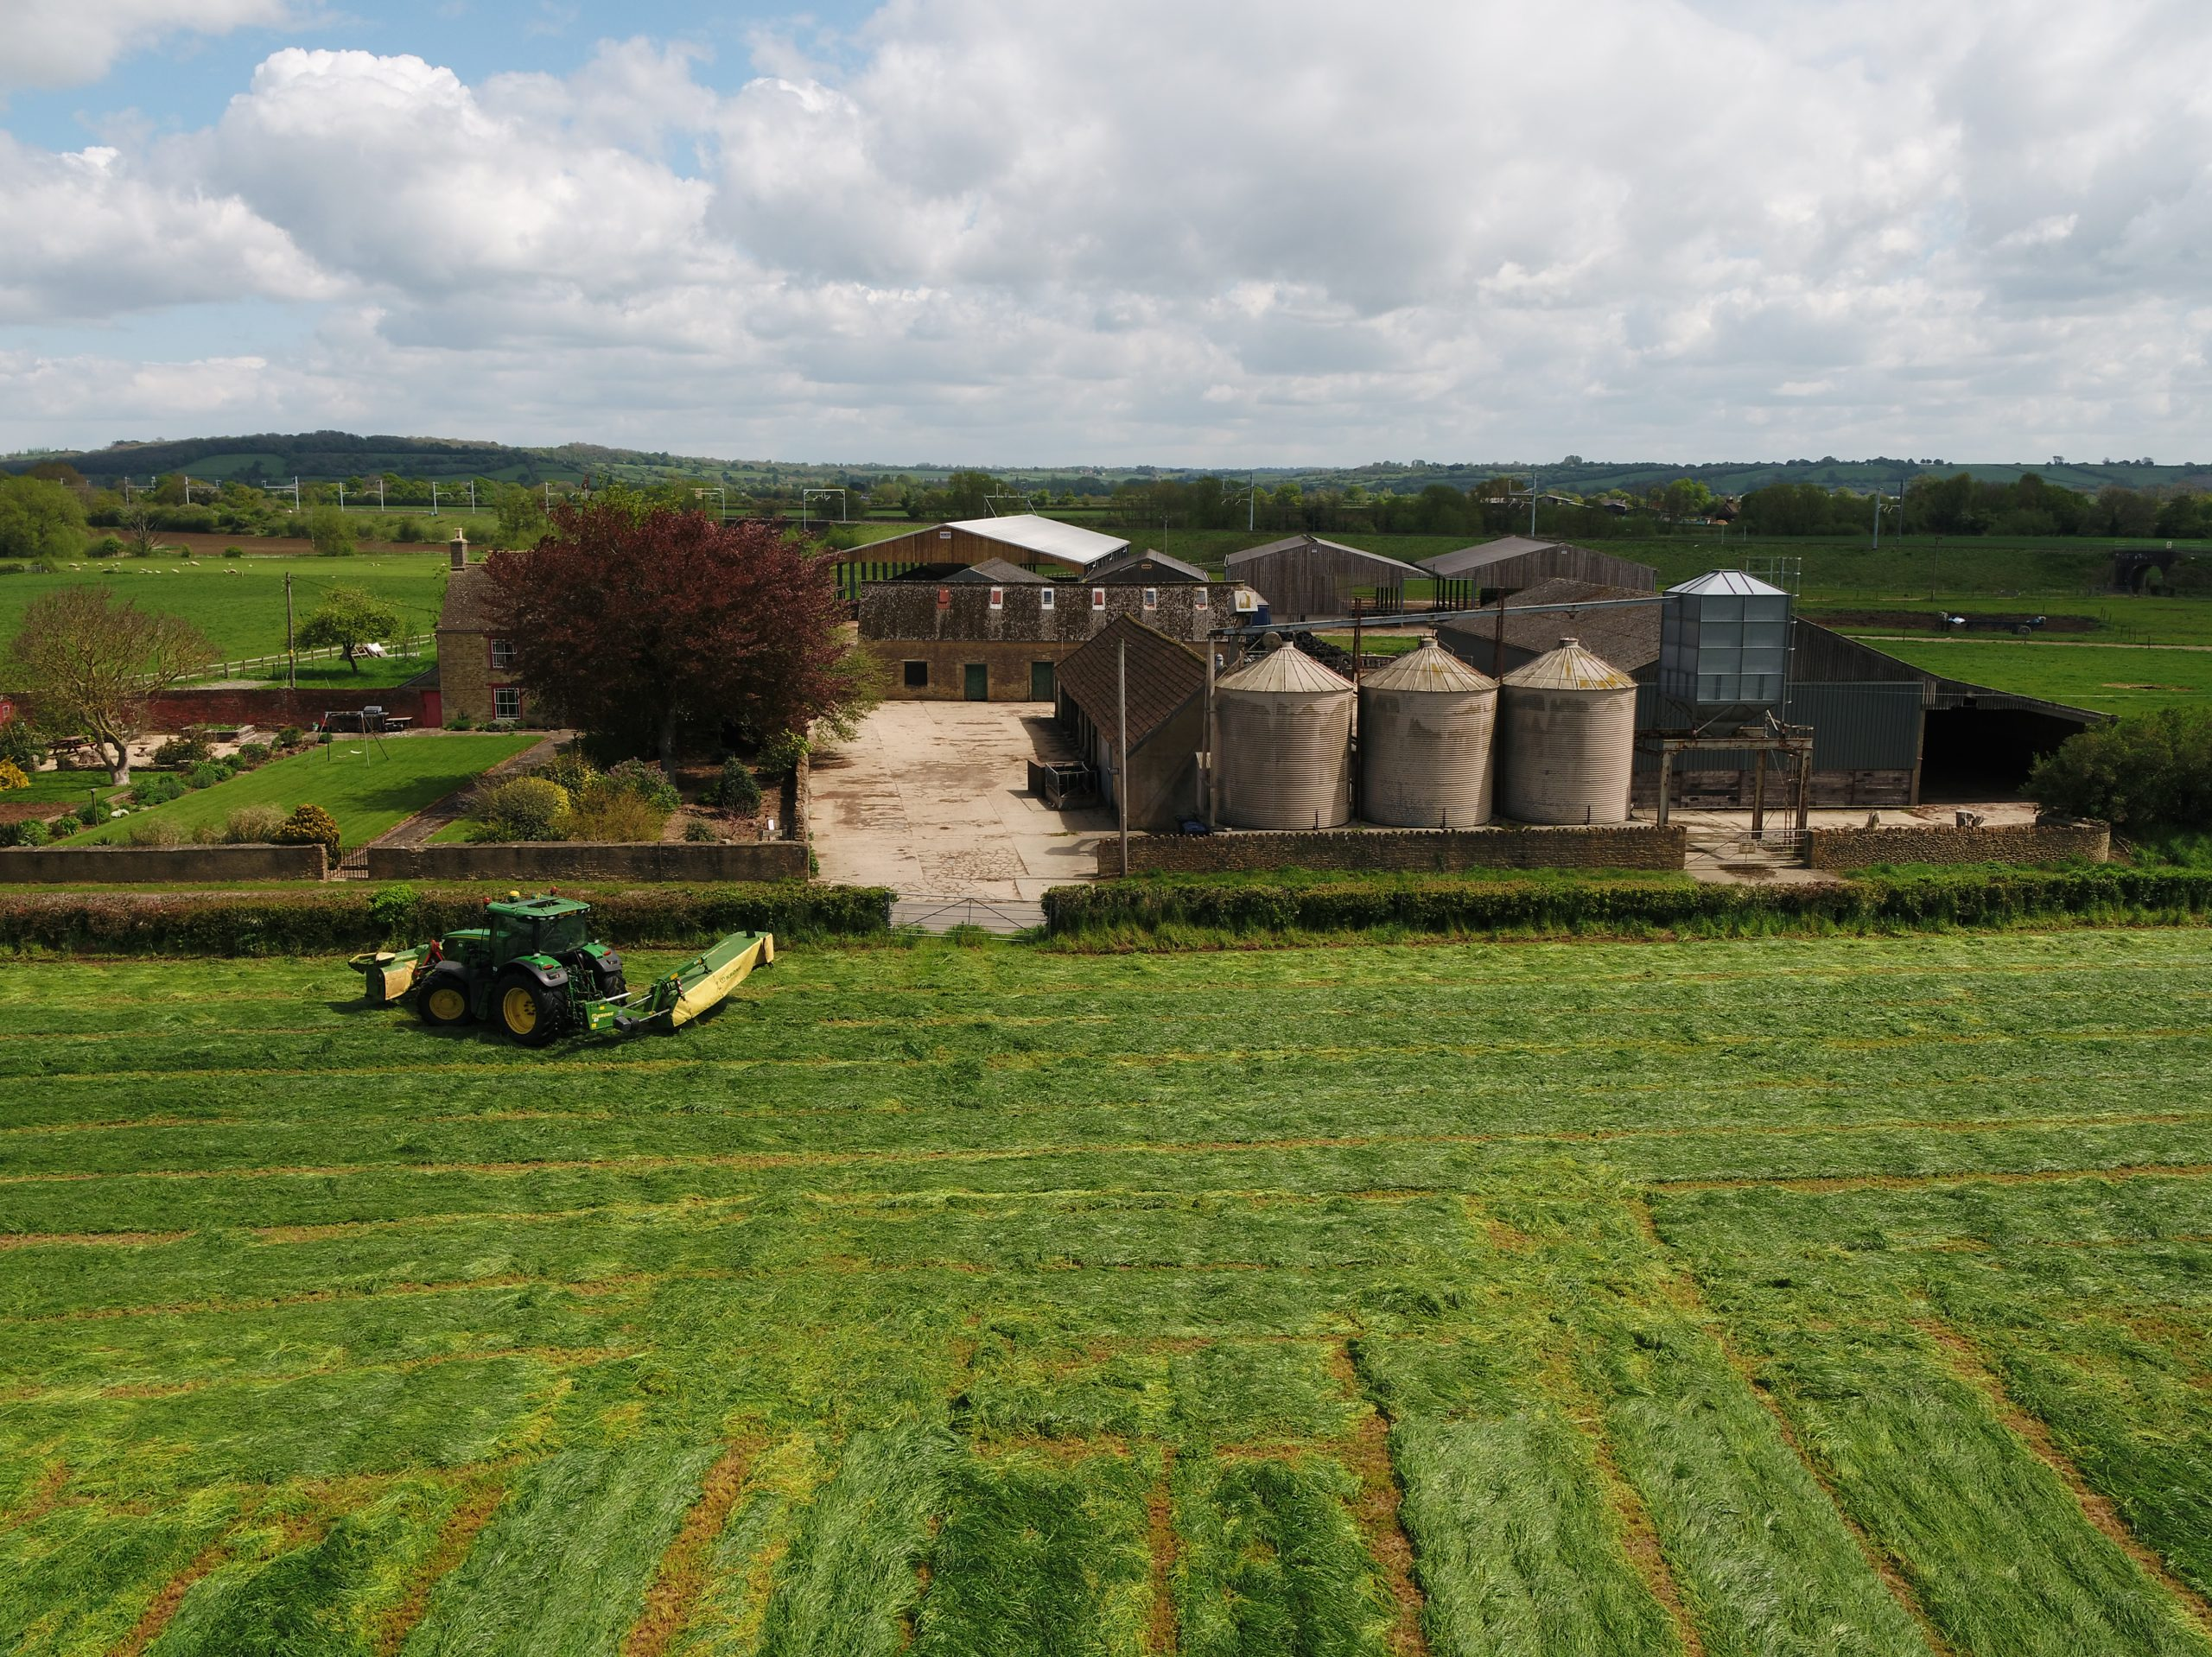 image of tractor in field taken by drone